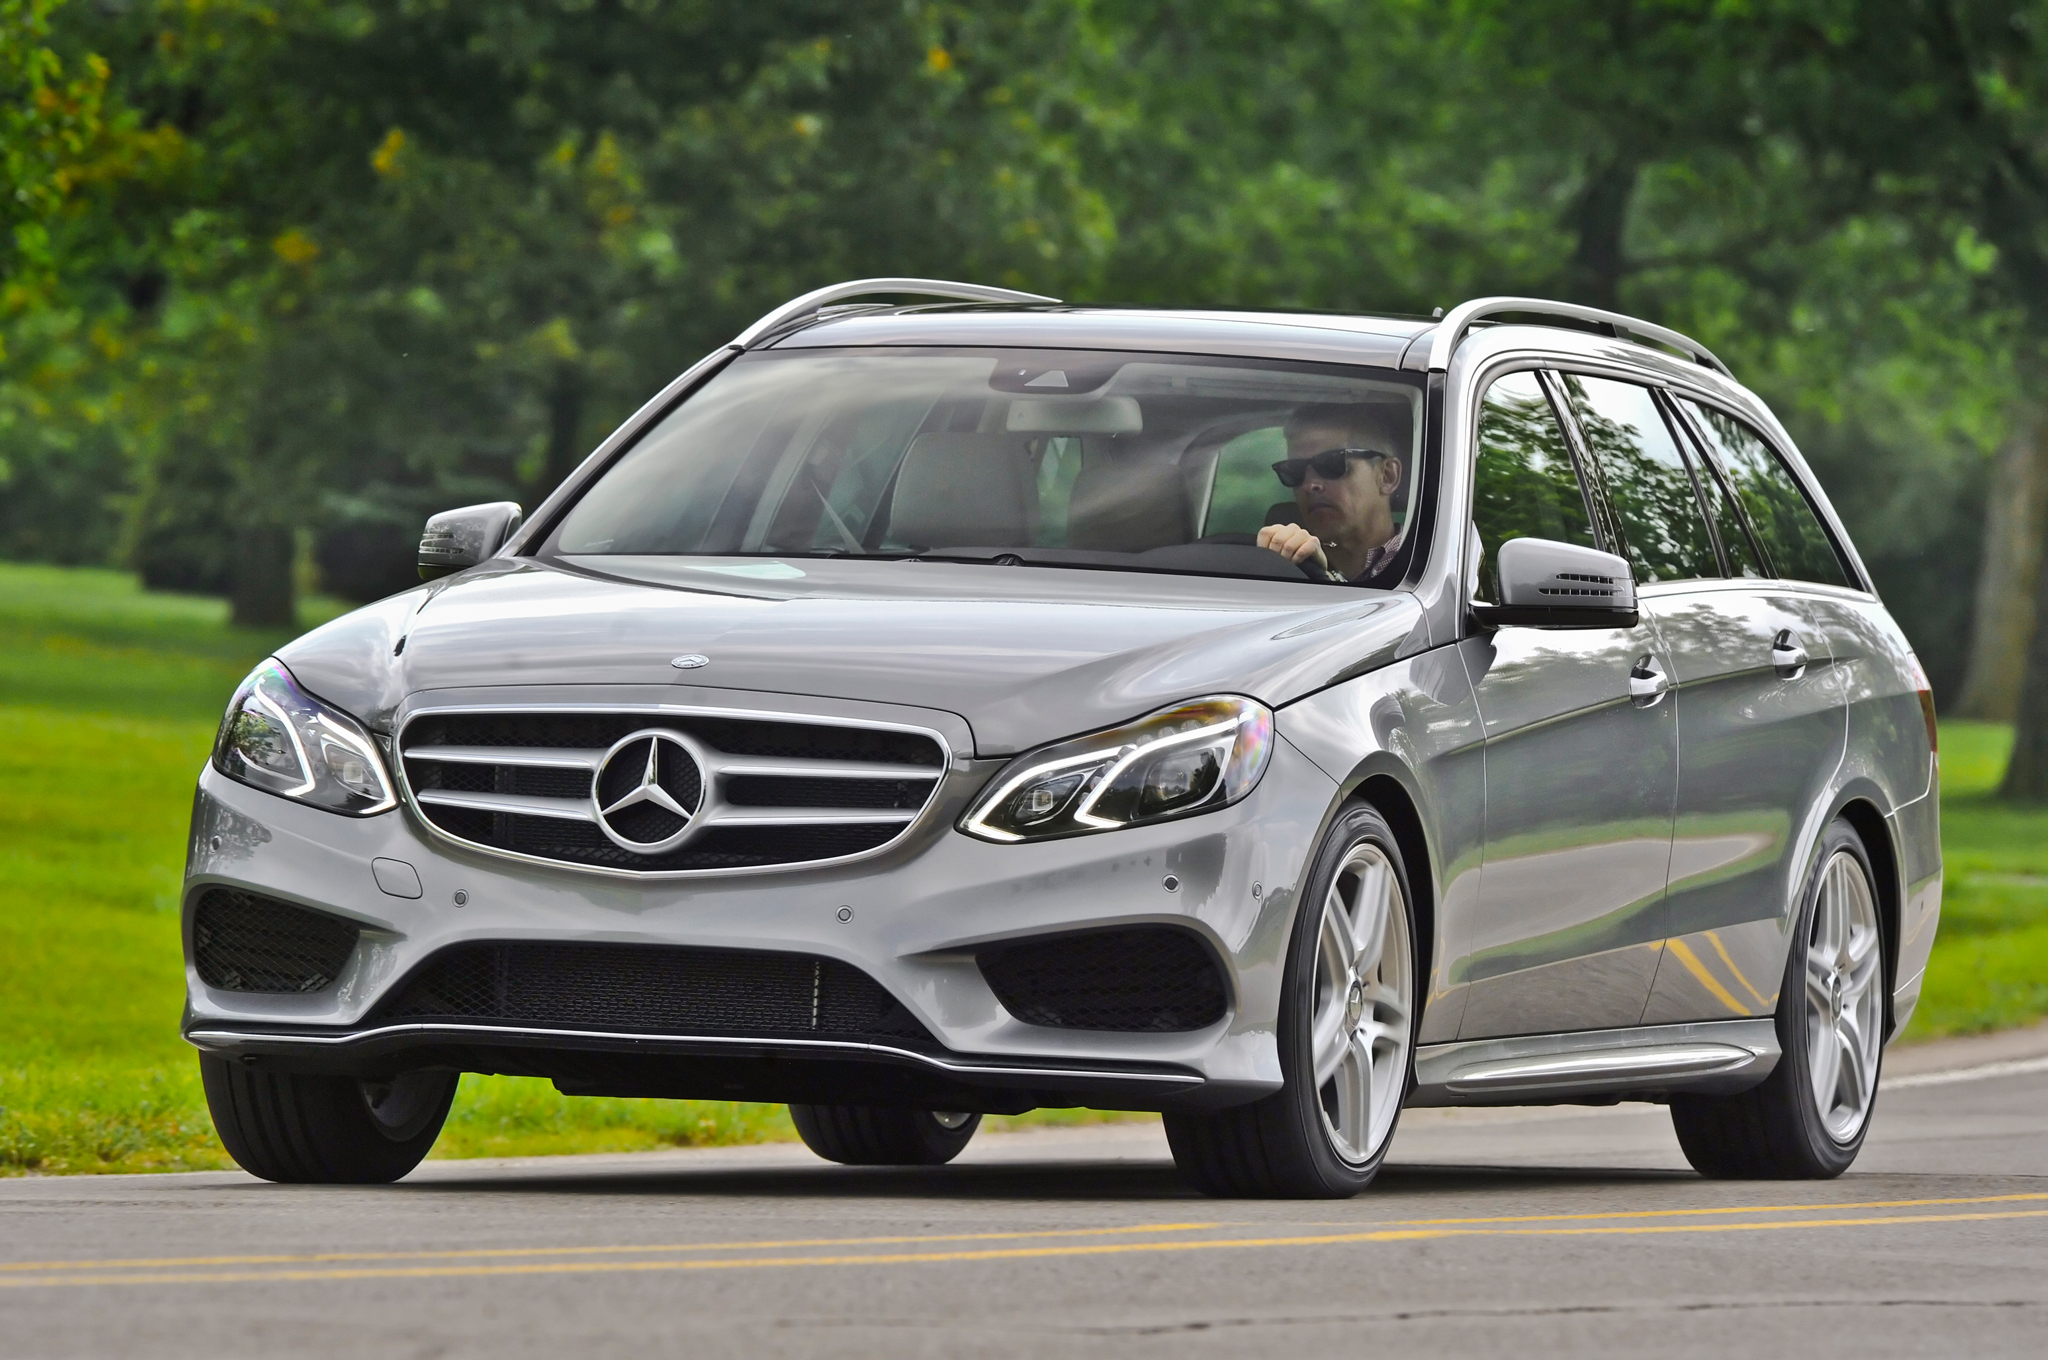 2014 mercedes benz e350 4matic wagon first drive [ 2048 x 1360 Pixel ]